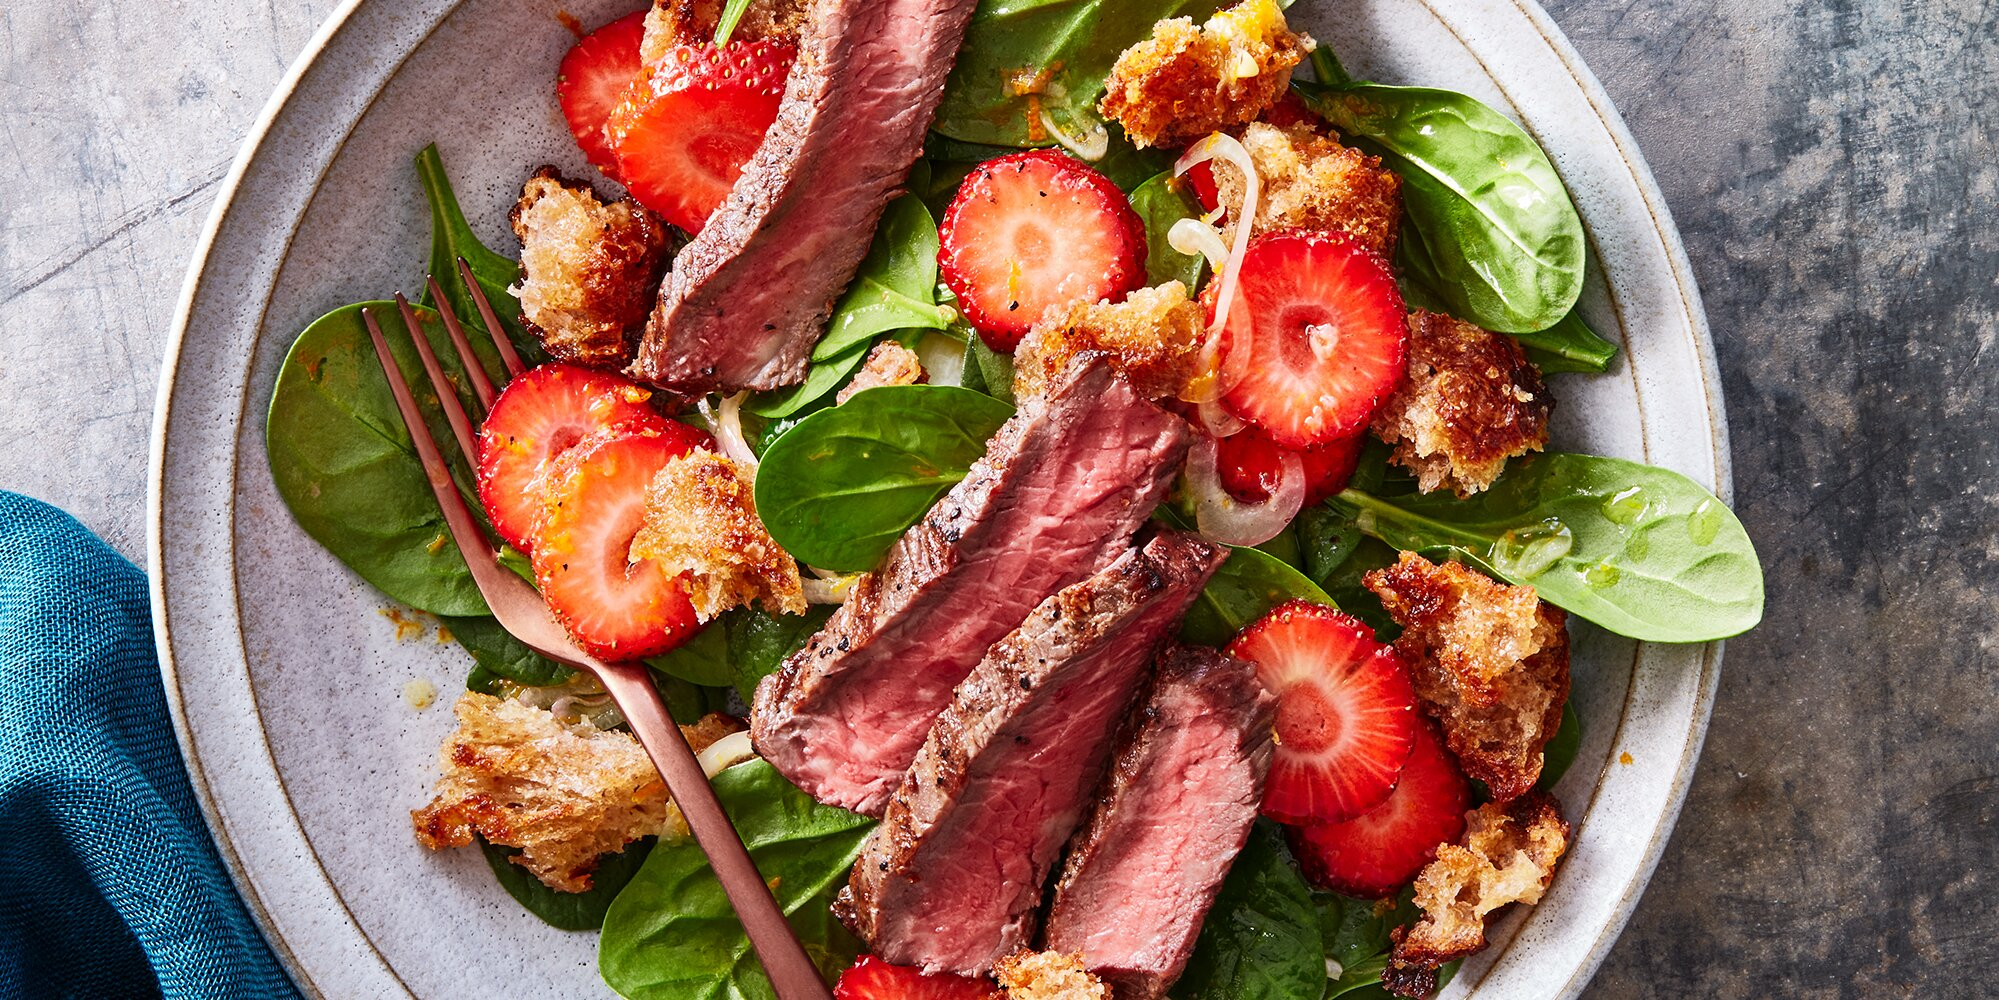 Steak & Strawberry Spinach Salad